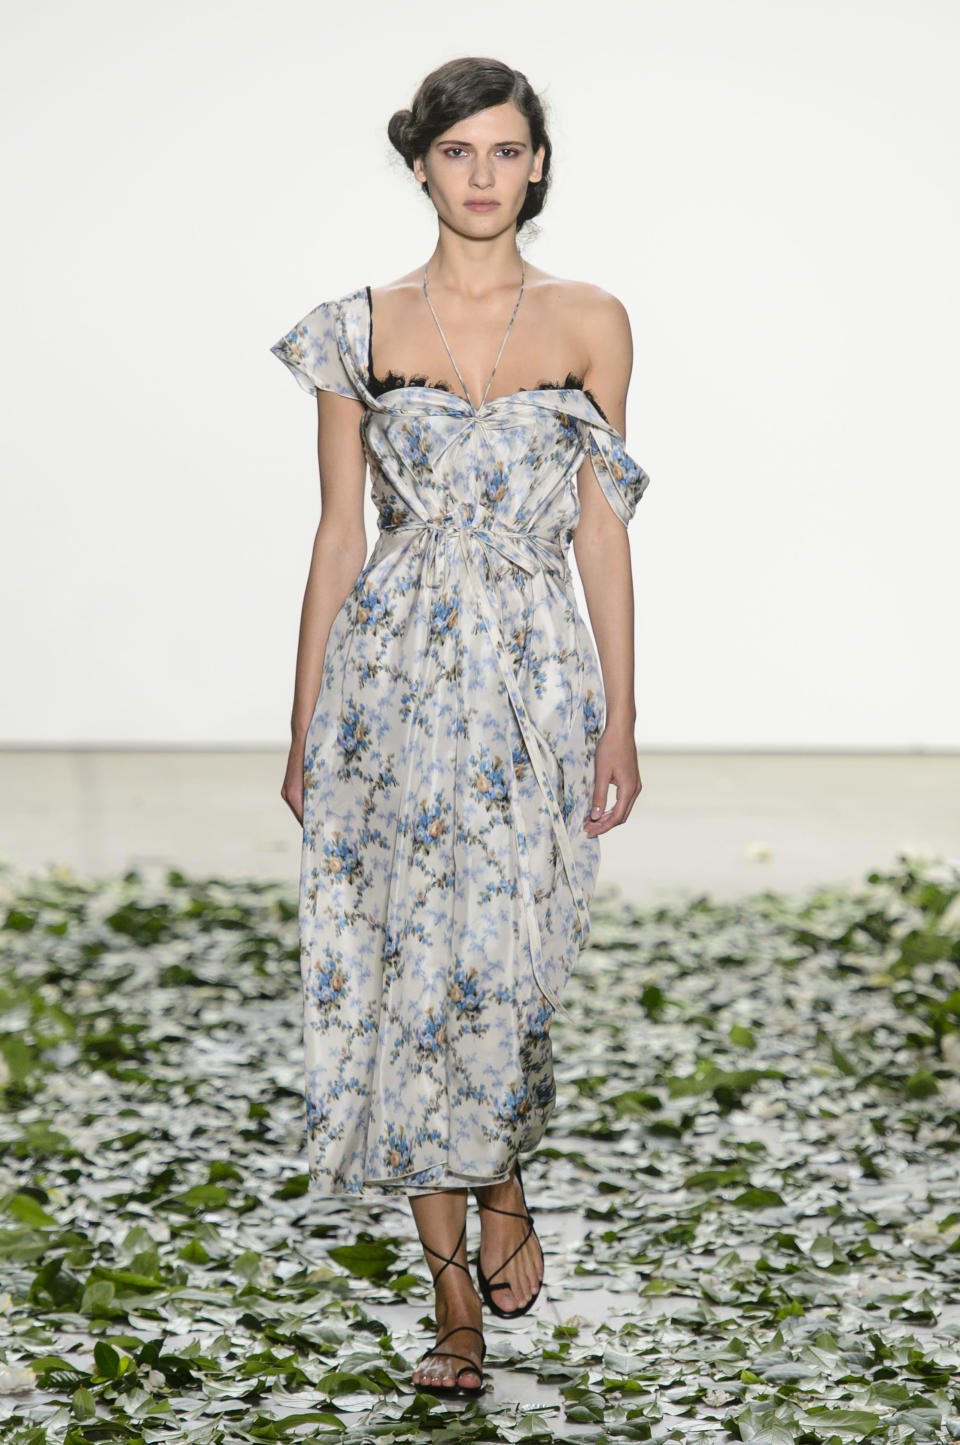 <p><i>Model wears a one-shoulder, floral-print dress from the SS18 Brock Collection. (Photo: ImaxTree) </i></p>